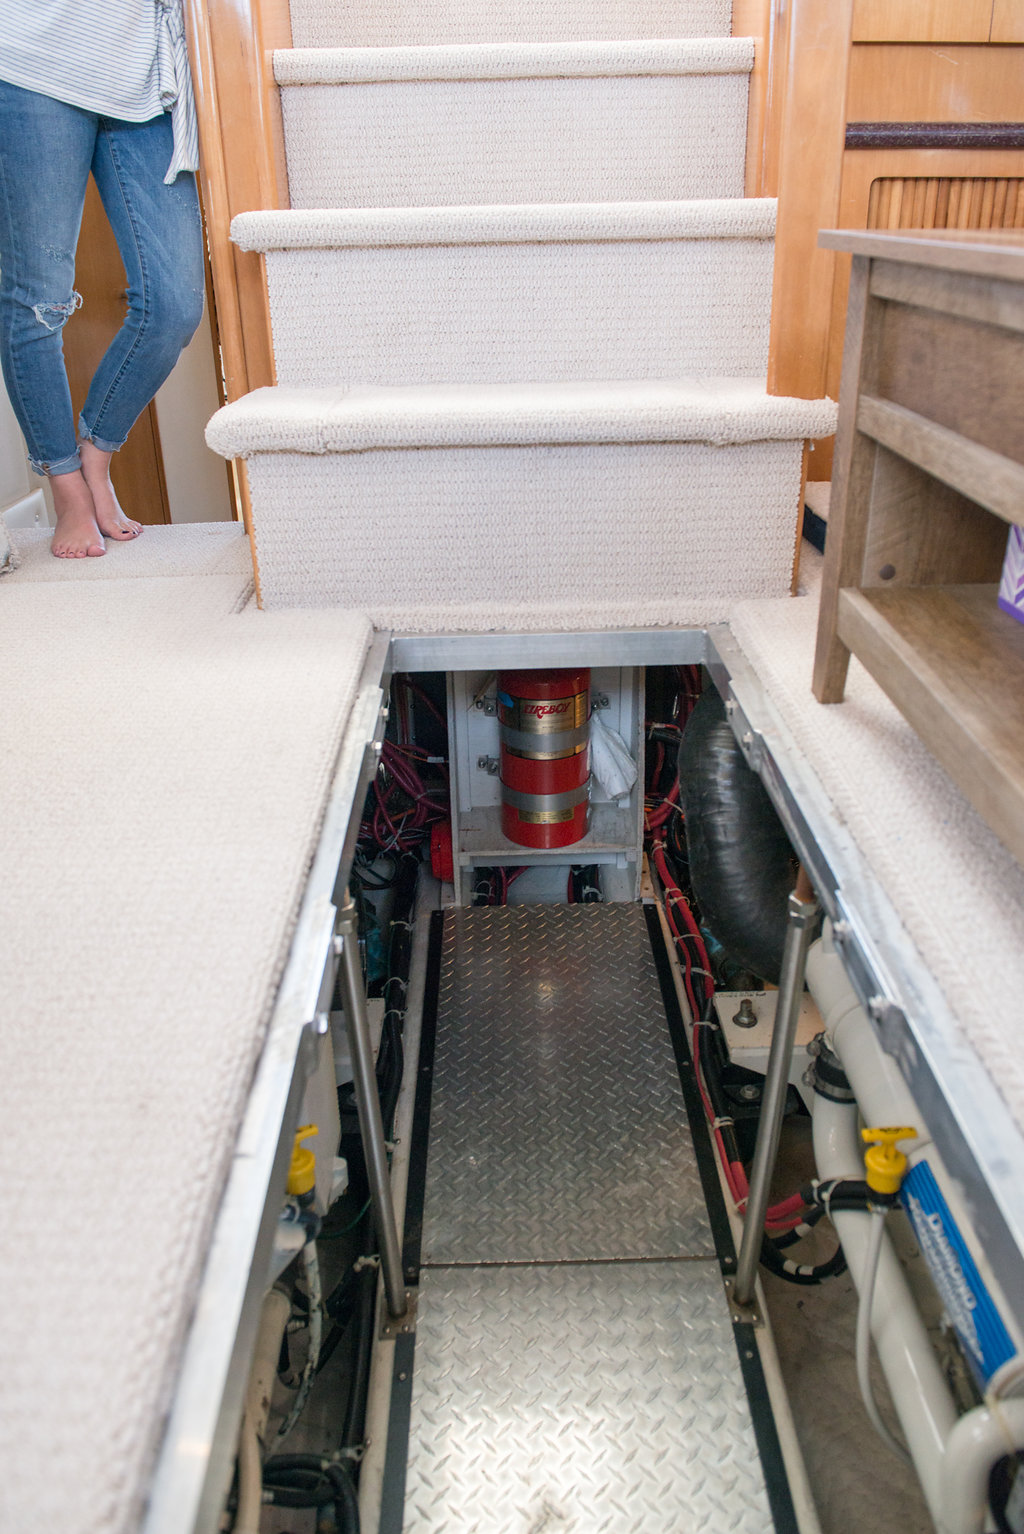 The engine room is below the main salon. Just lift the floorboards and you find a whole new world.